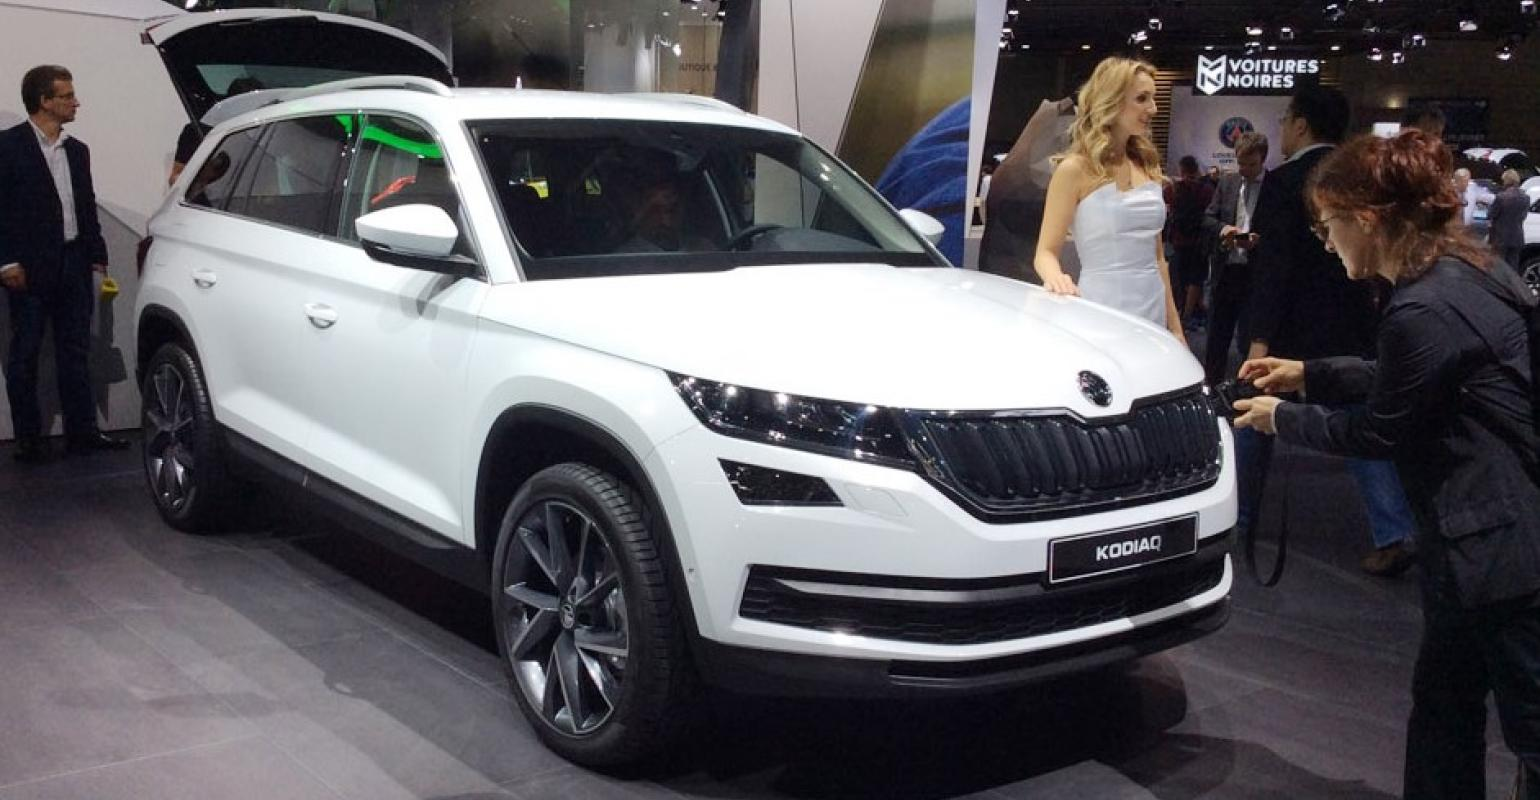 Cuv Car Asia Avto Production Of New Skoda Cars Begins In Kazakhstan